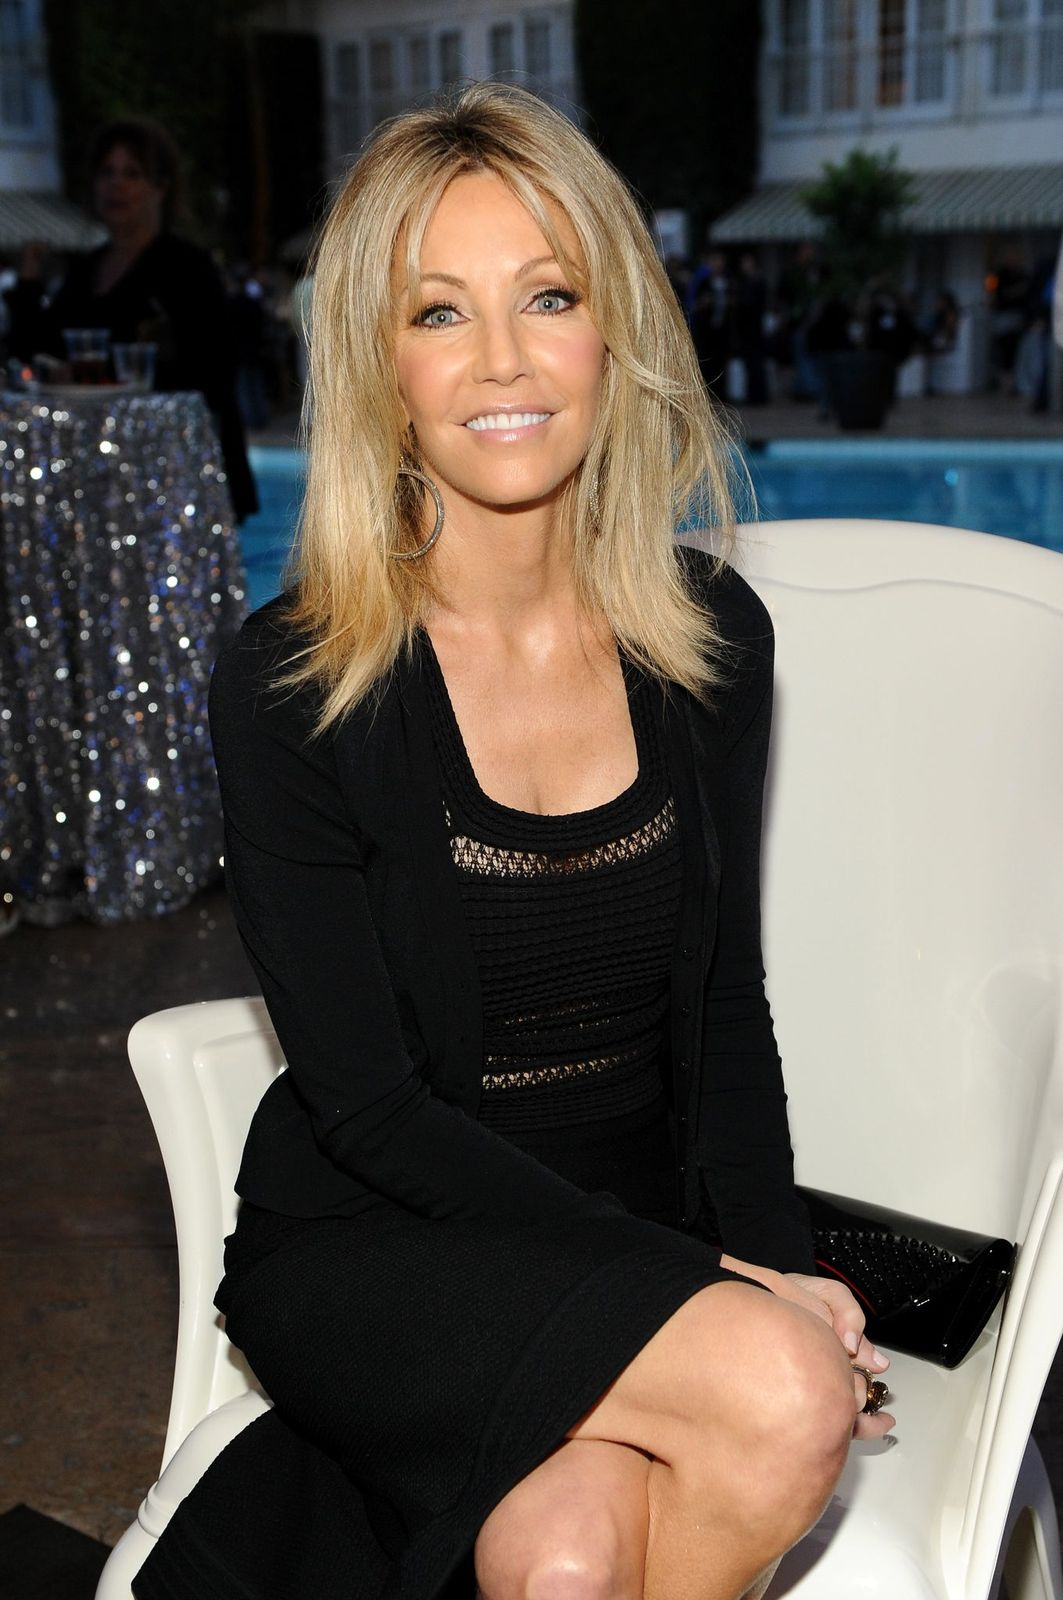 Heather Locklear at TNT 25TH Anniversary Party during Turner Broadcasting's 2013 TCA Summer Tour at The Beverly Hilton Hotel on July 24, 2013 | Photo: Getty Images